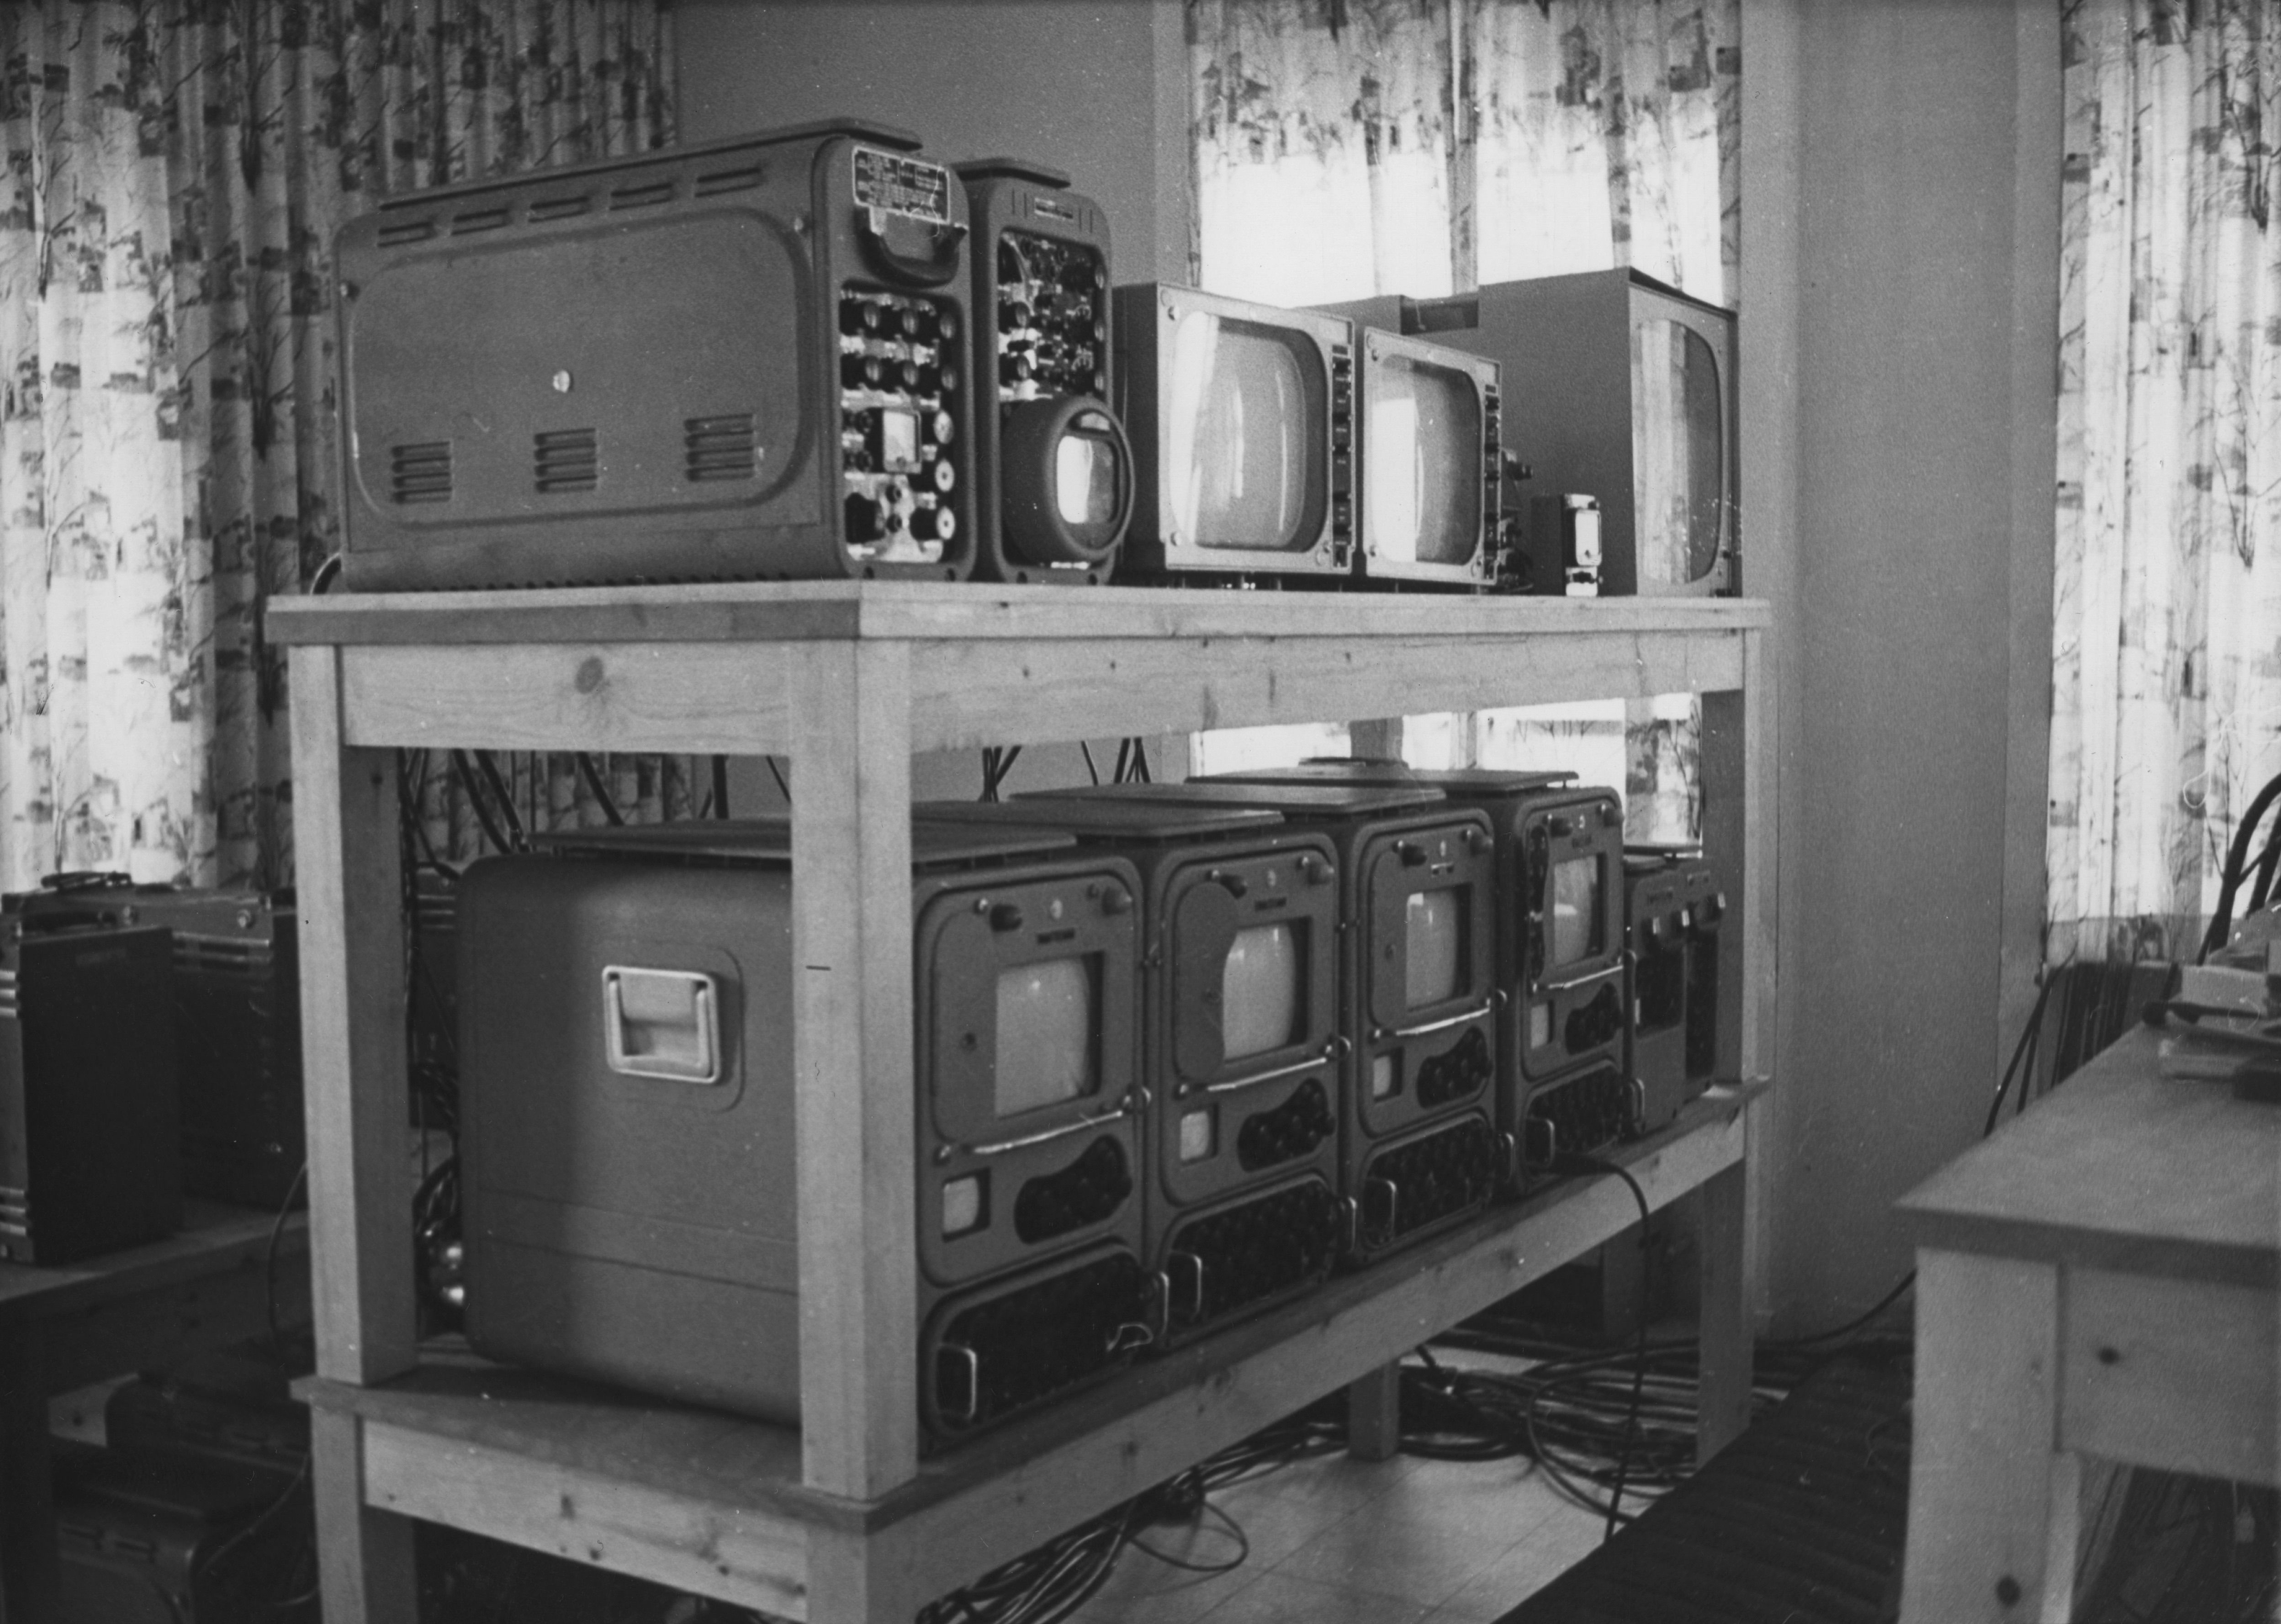 TV equipment used to broadcast the 1961 trial of Adolf Eichmann in Israel.